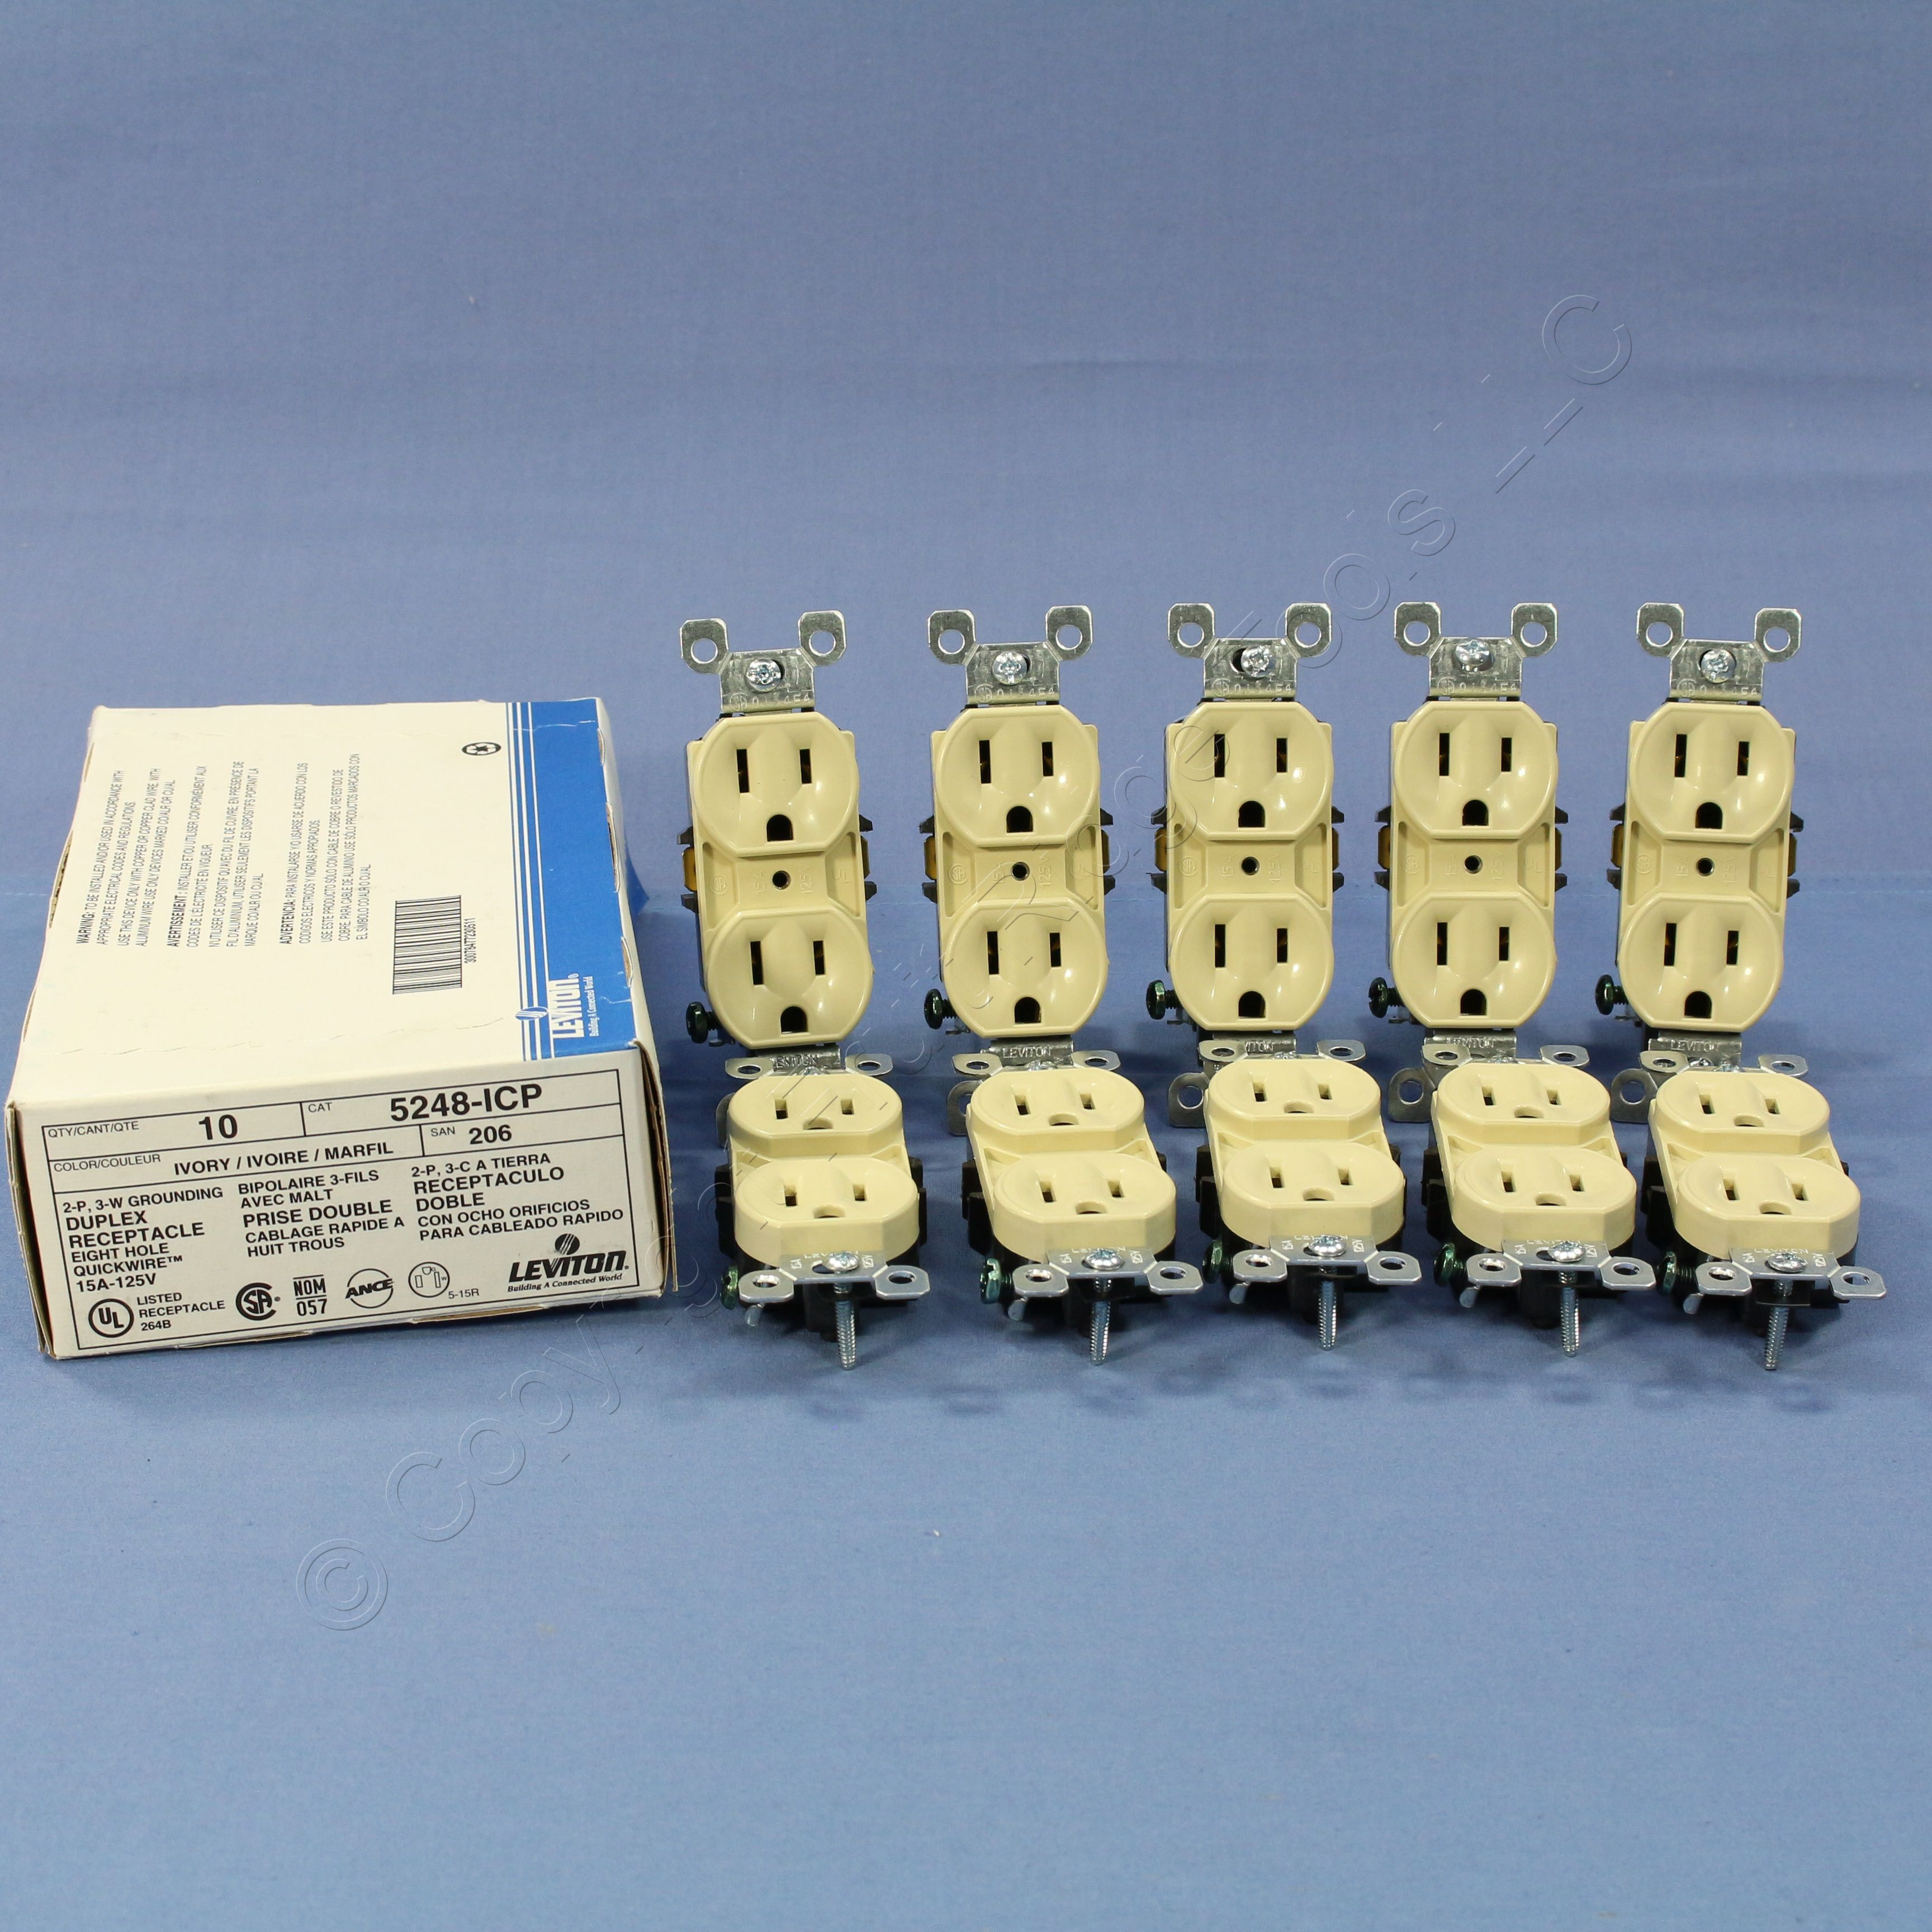 10 Leviton RESIDENTIAL Ivory Duplex Receptacle Outlets NEMA 5-15 15A ...